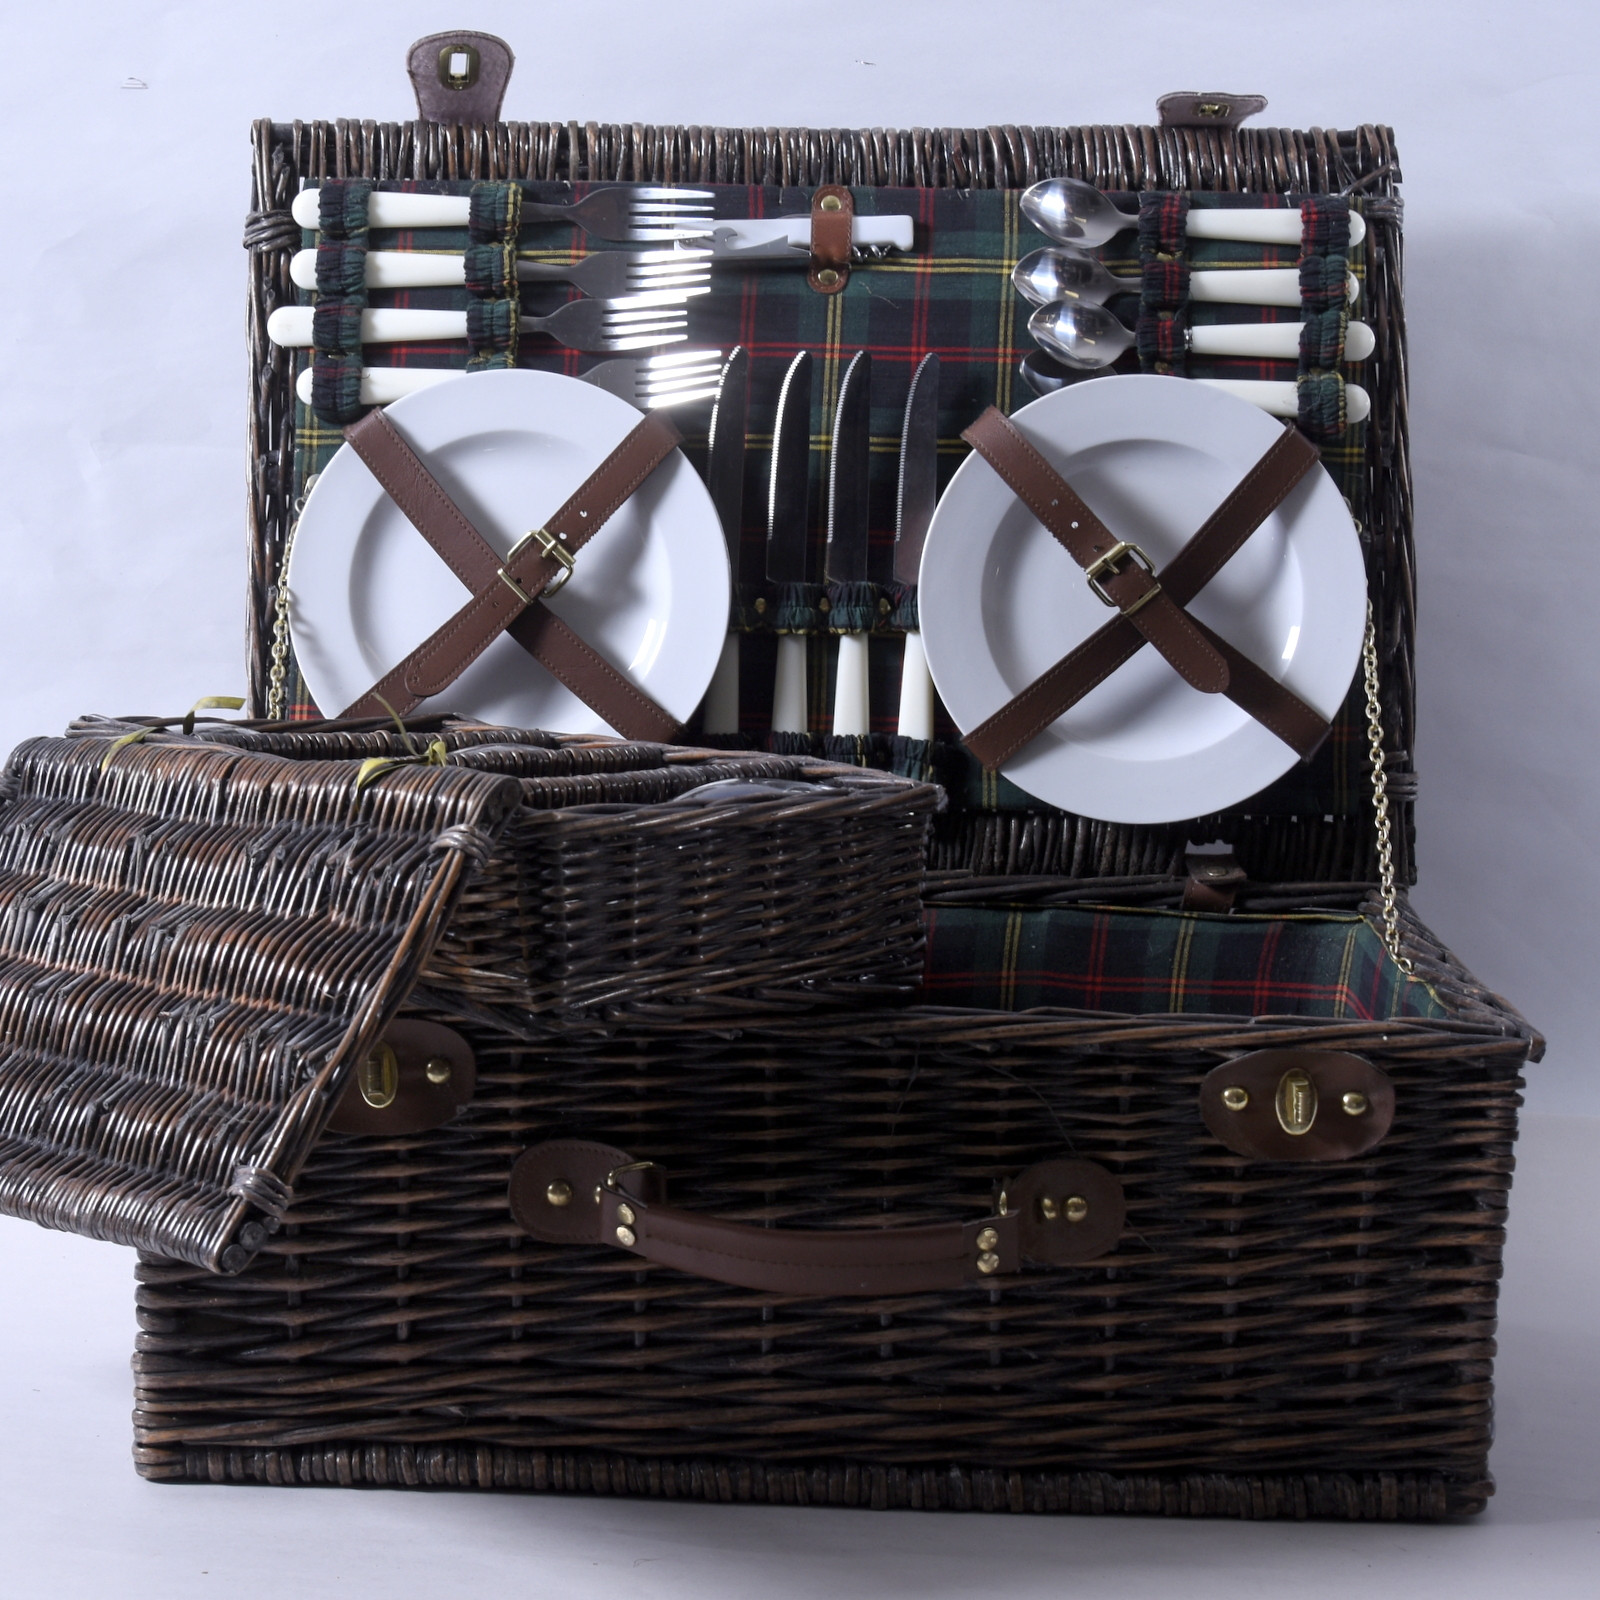 PICNIC BAG, with accessories ,, late 20th century. Other